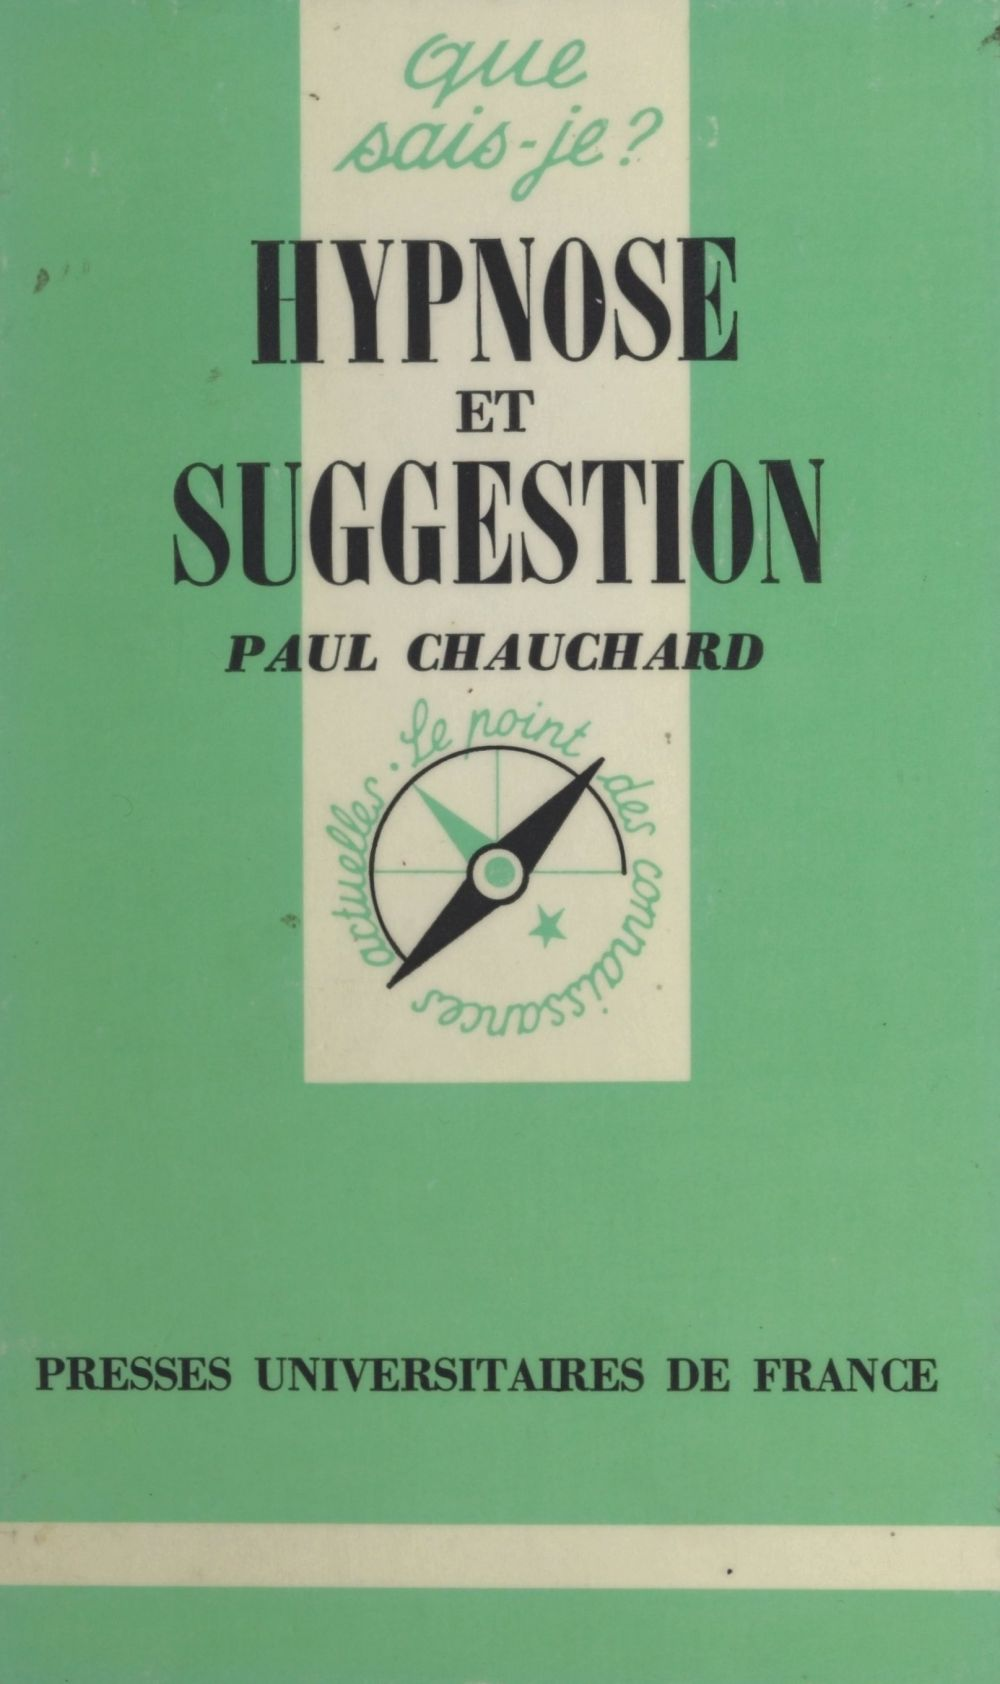 Hypnose et suggestion